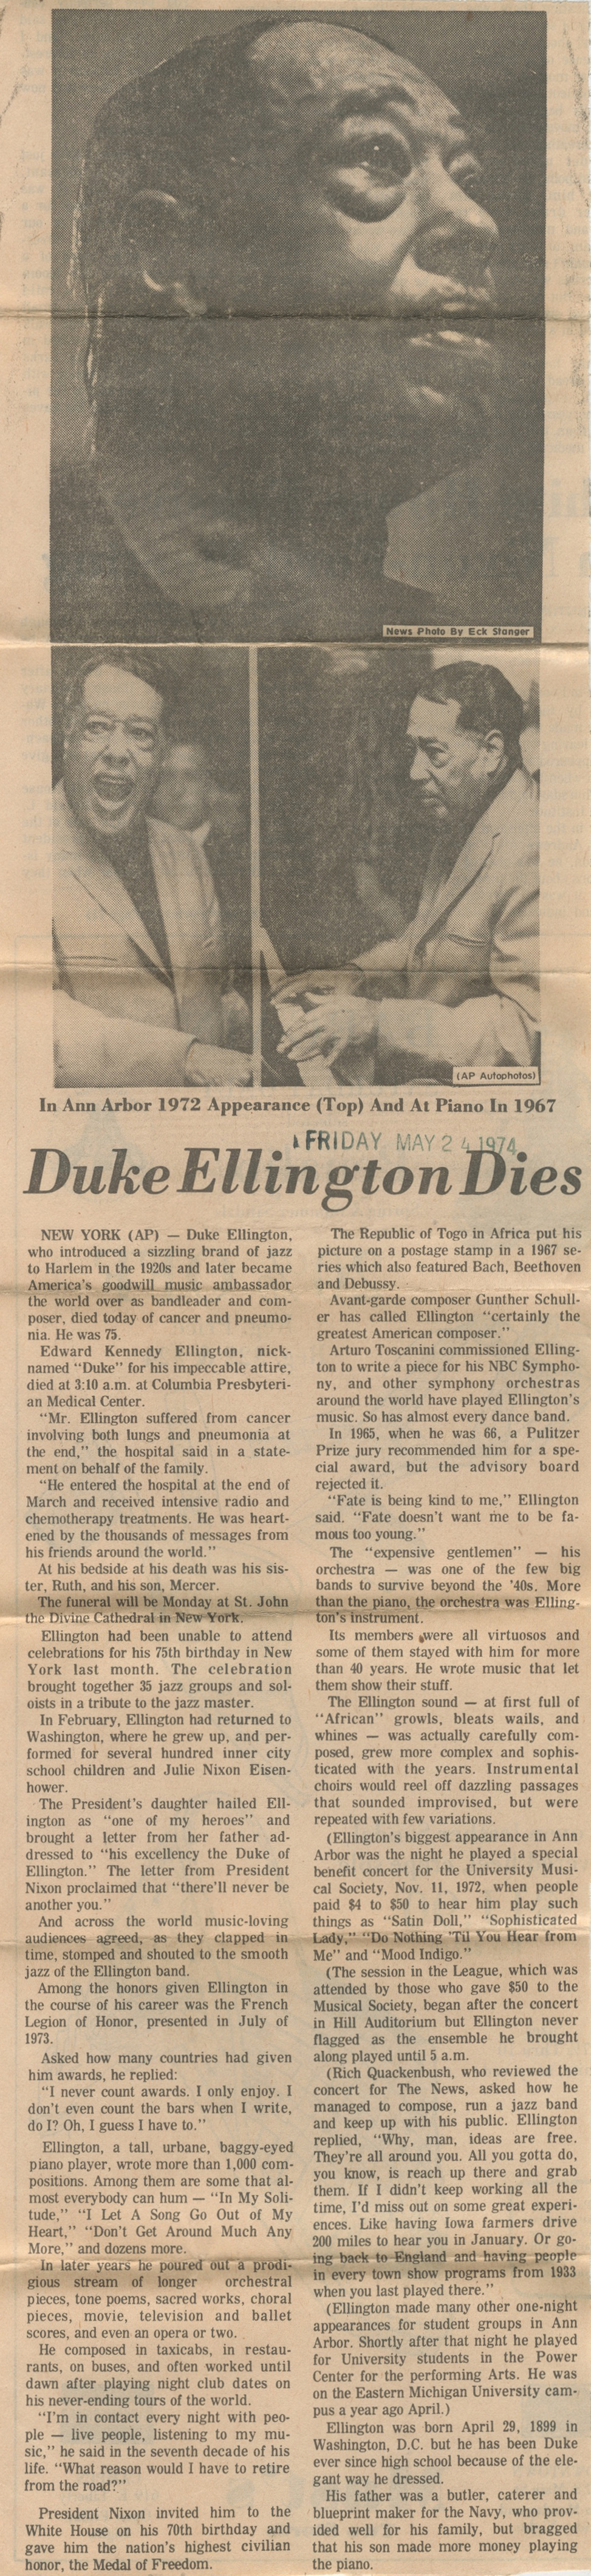 Duke Ellington Dies image